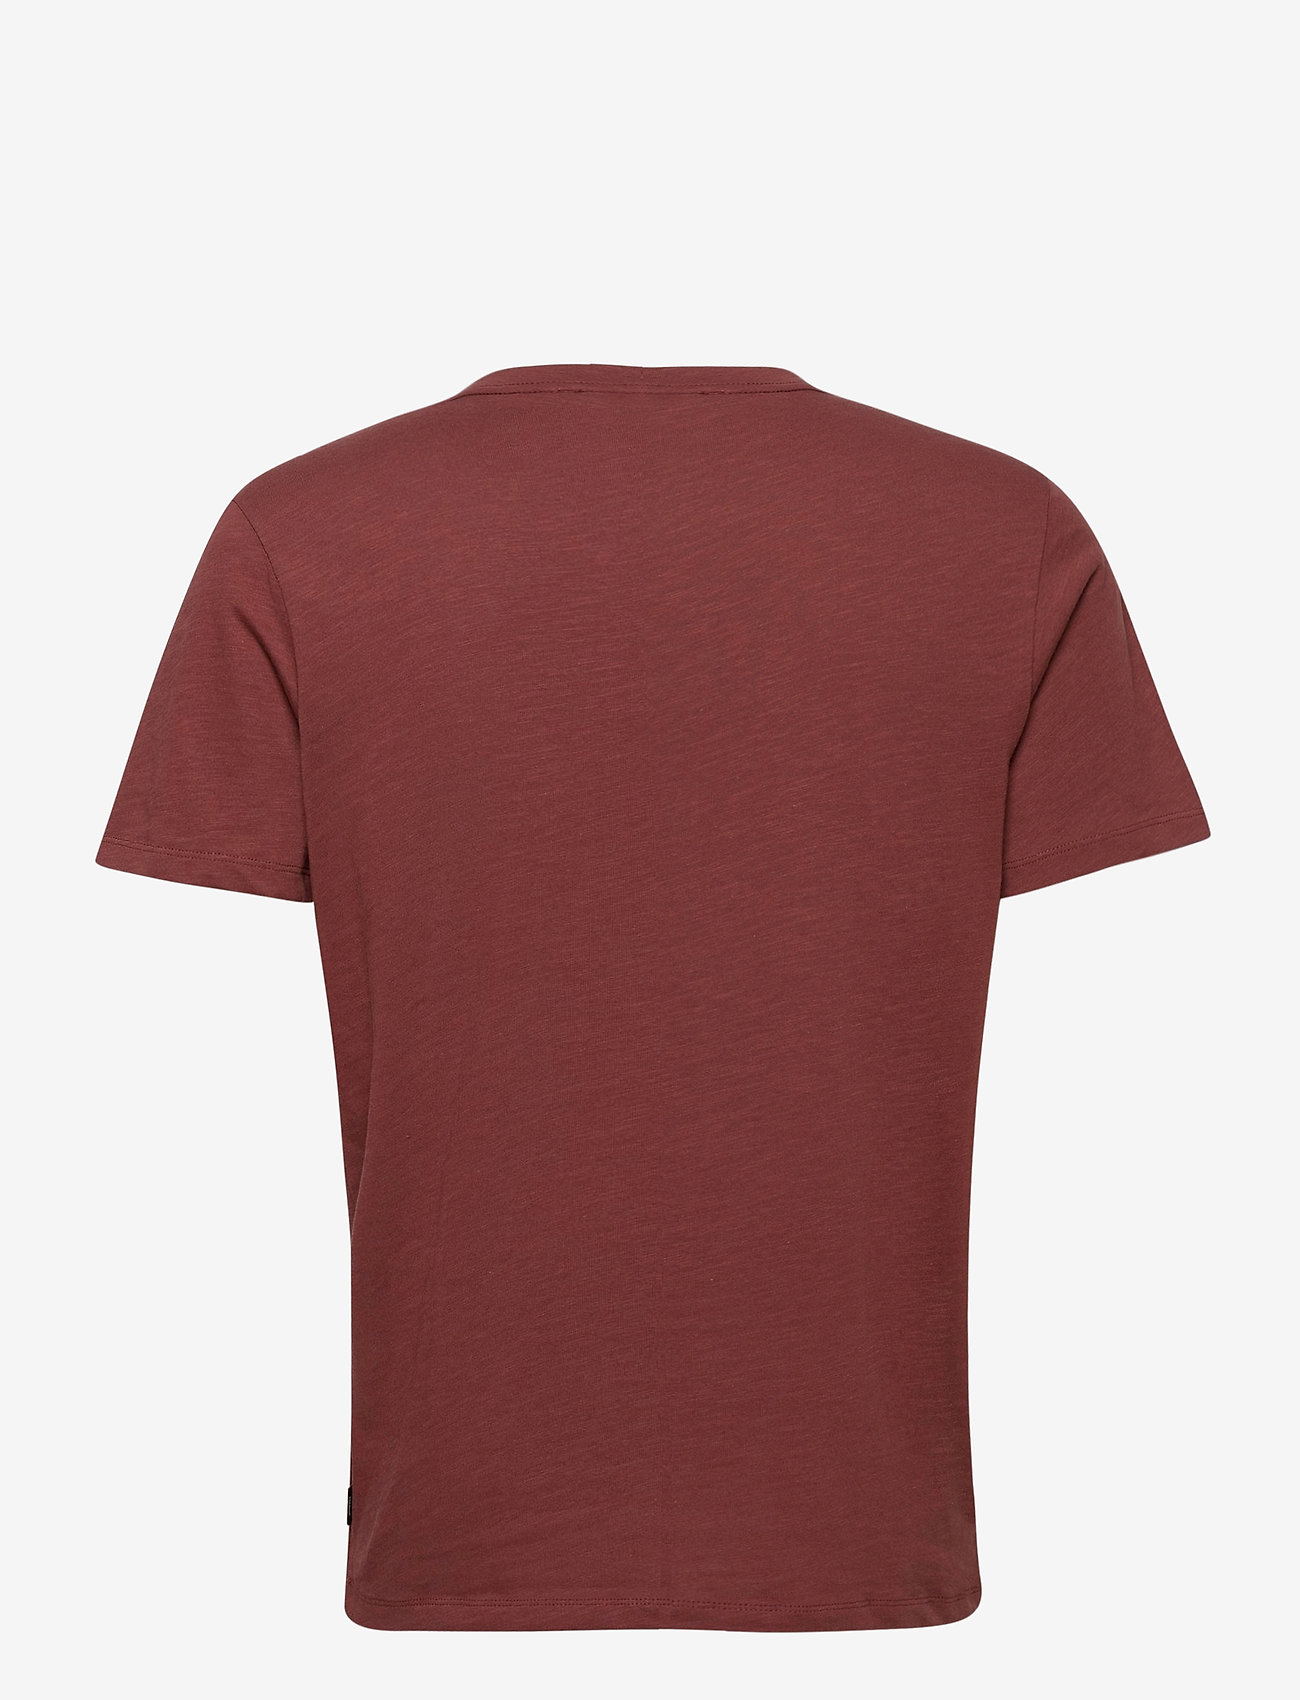 Jack & Jones JPRBLADEAN SS TEE CREW NECK - T-skjorter HOT CHOCOLATE - Menn Klær